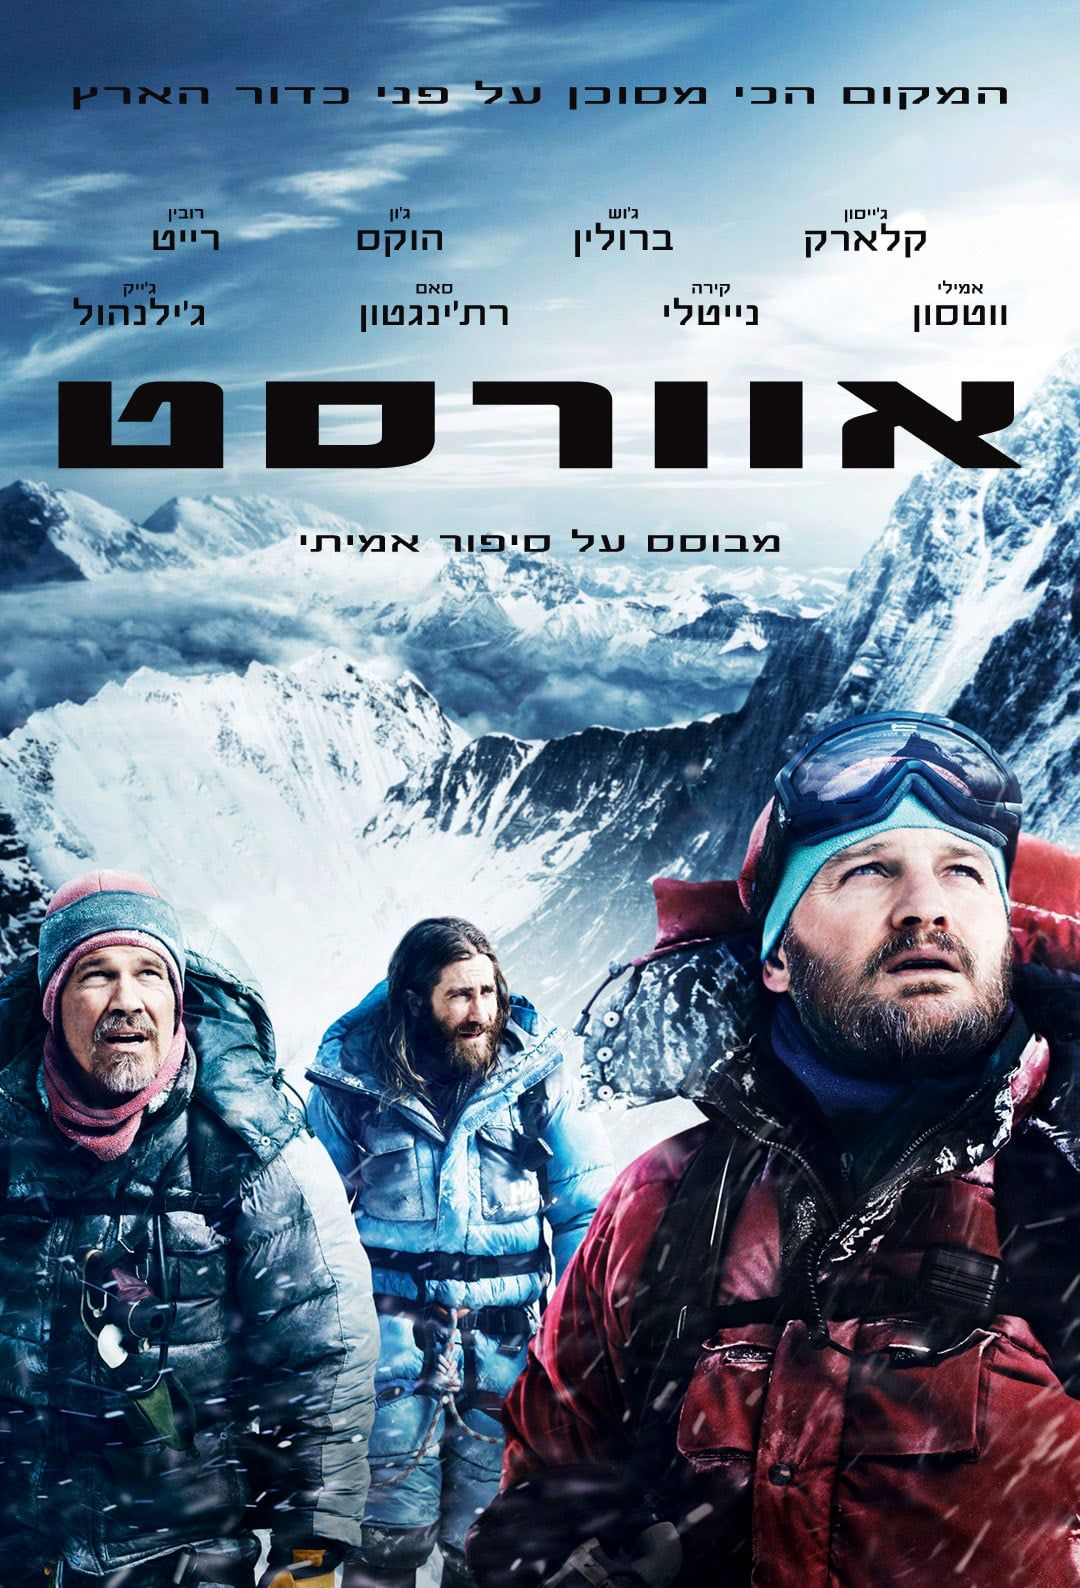 [HD1080p] Everest FULL MOVIE HD1080p Sub English